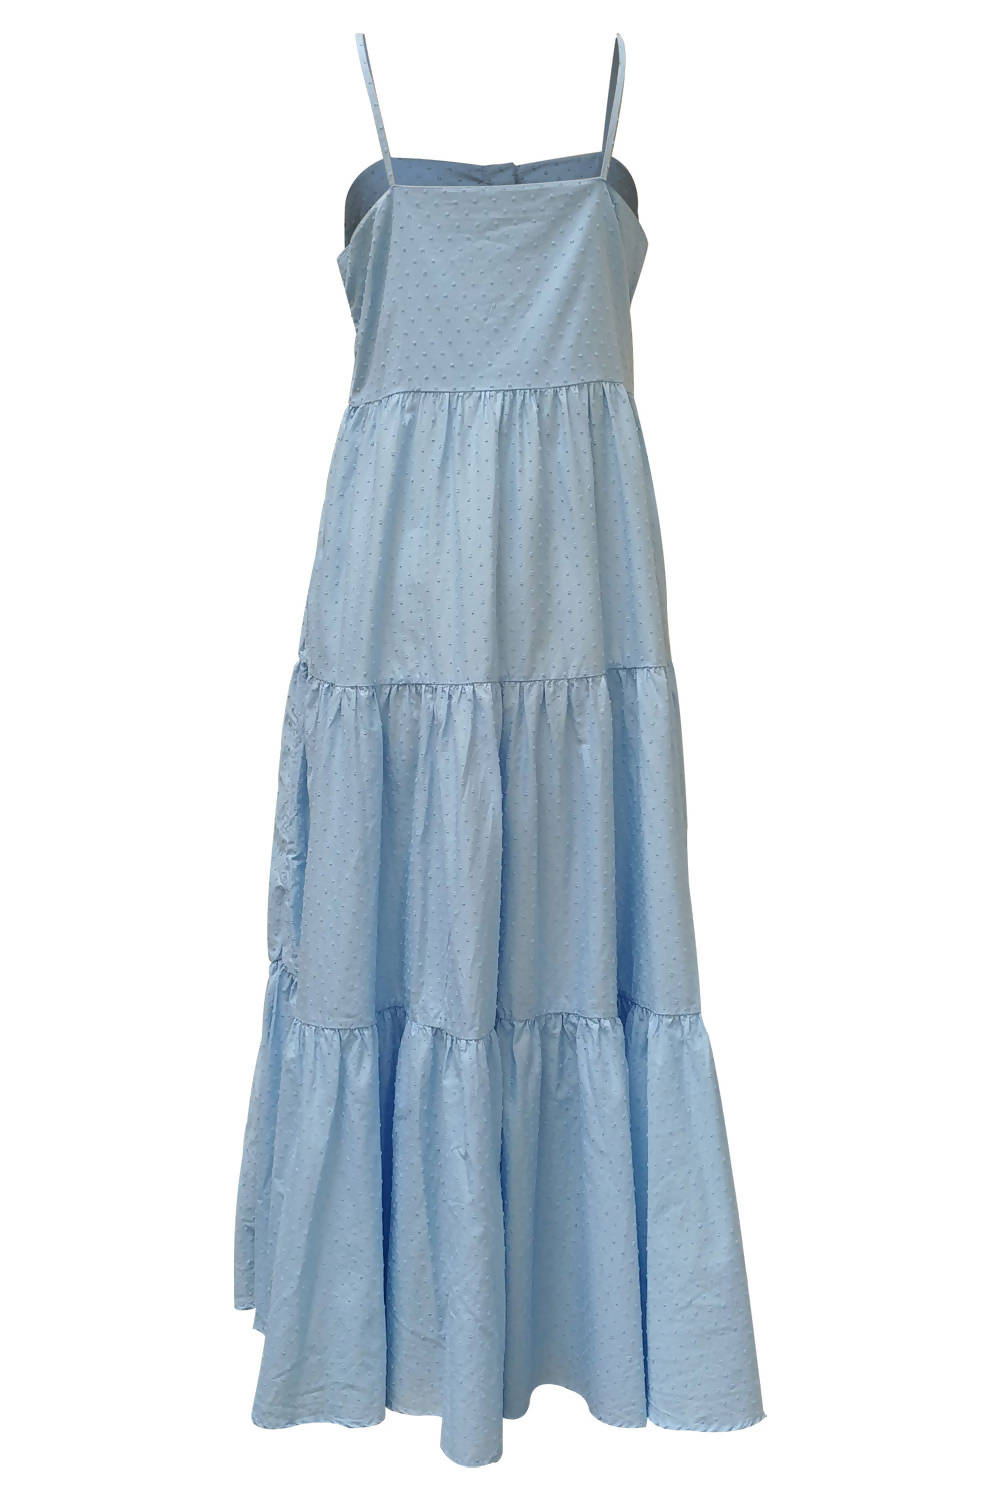 Recycled cotton dress Carla - Blue plumetis